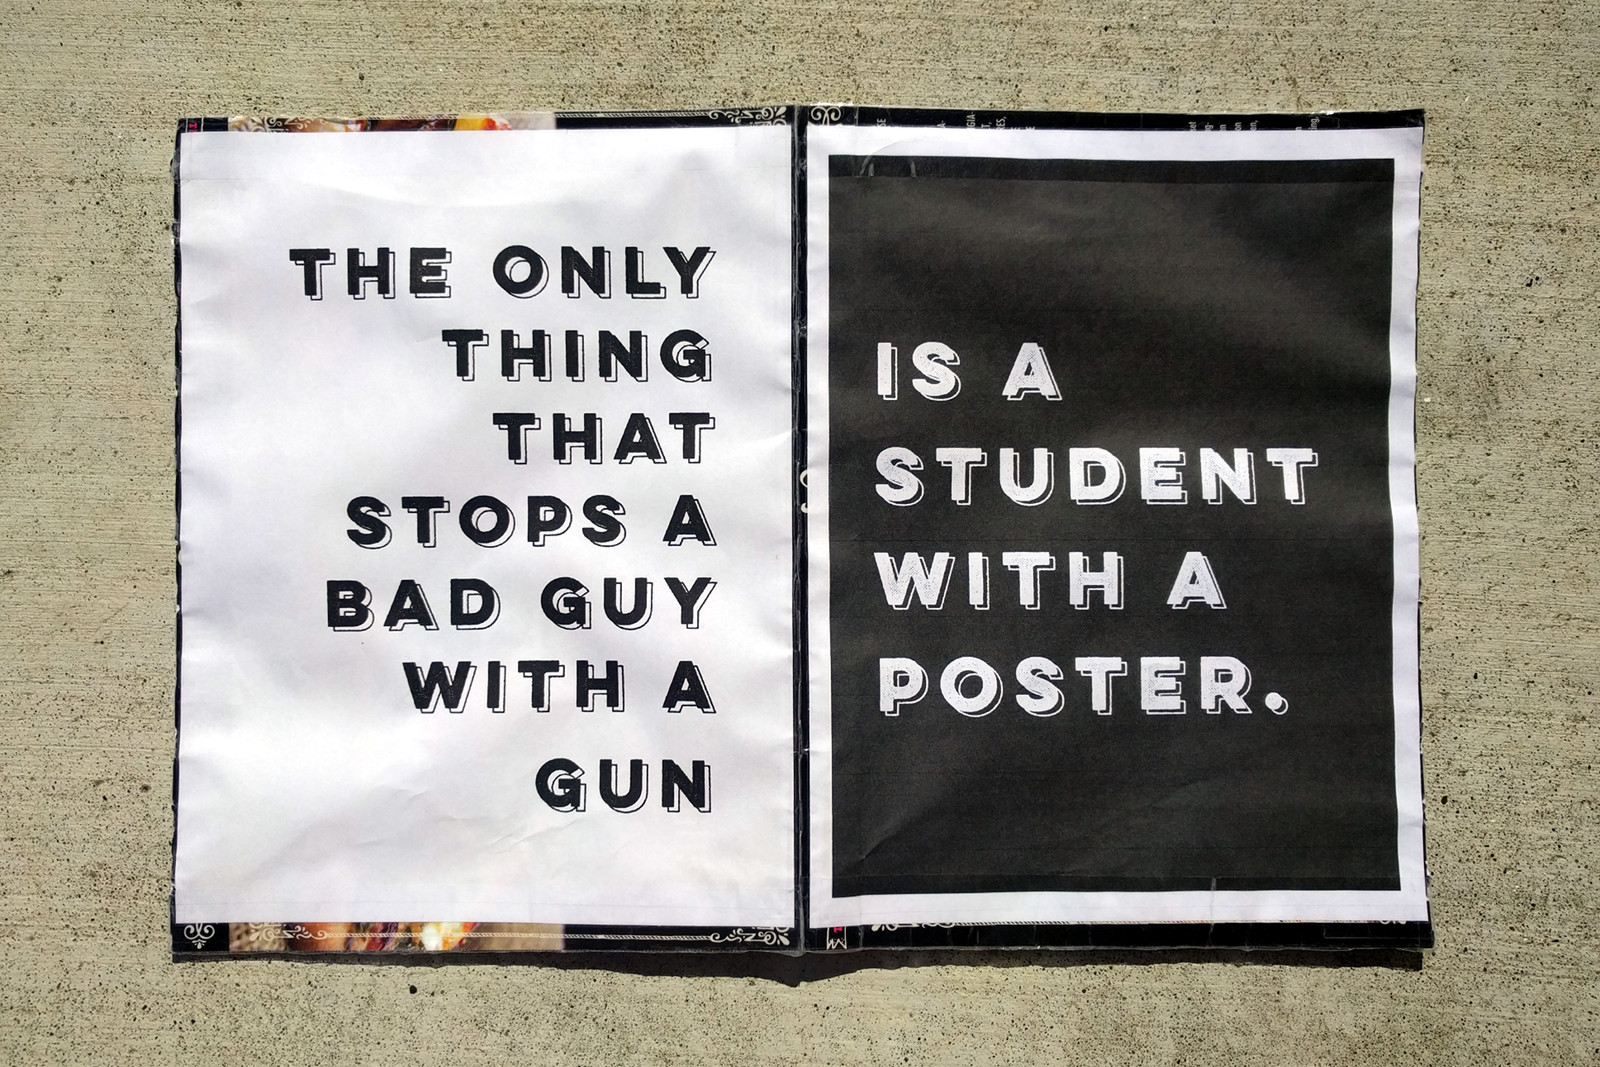 The only thing that stops a bad guy with a gun... is a student with a poster